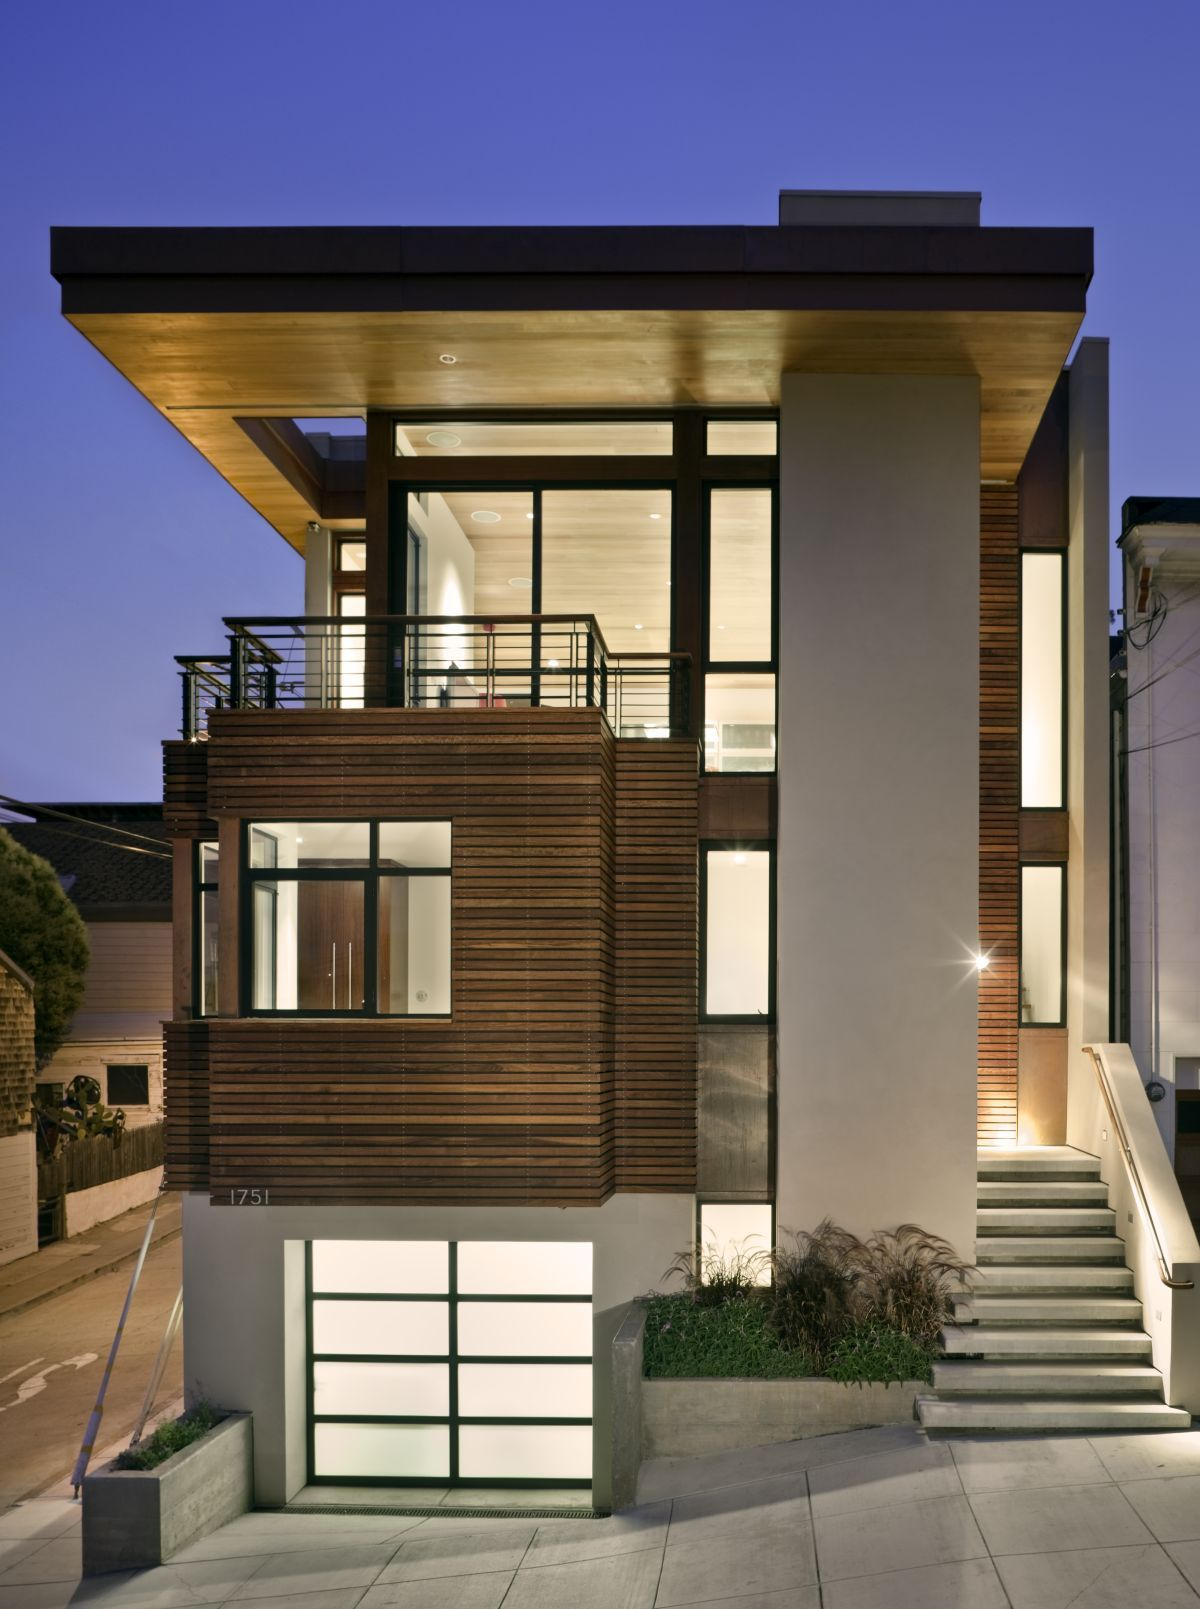 House modern exterior design new photo